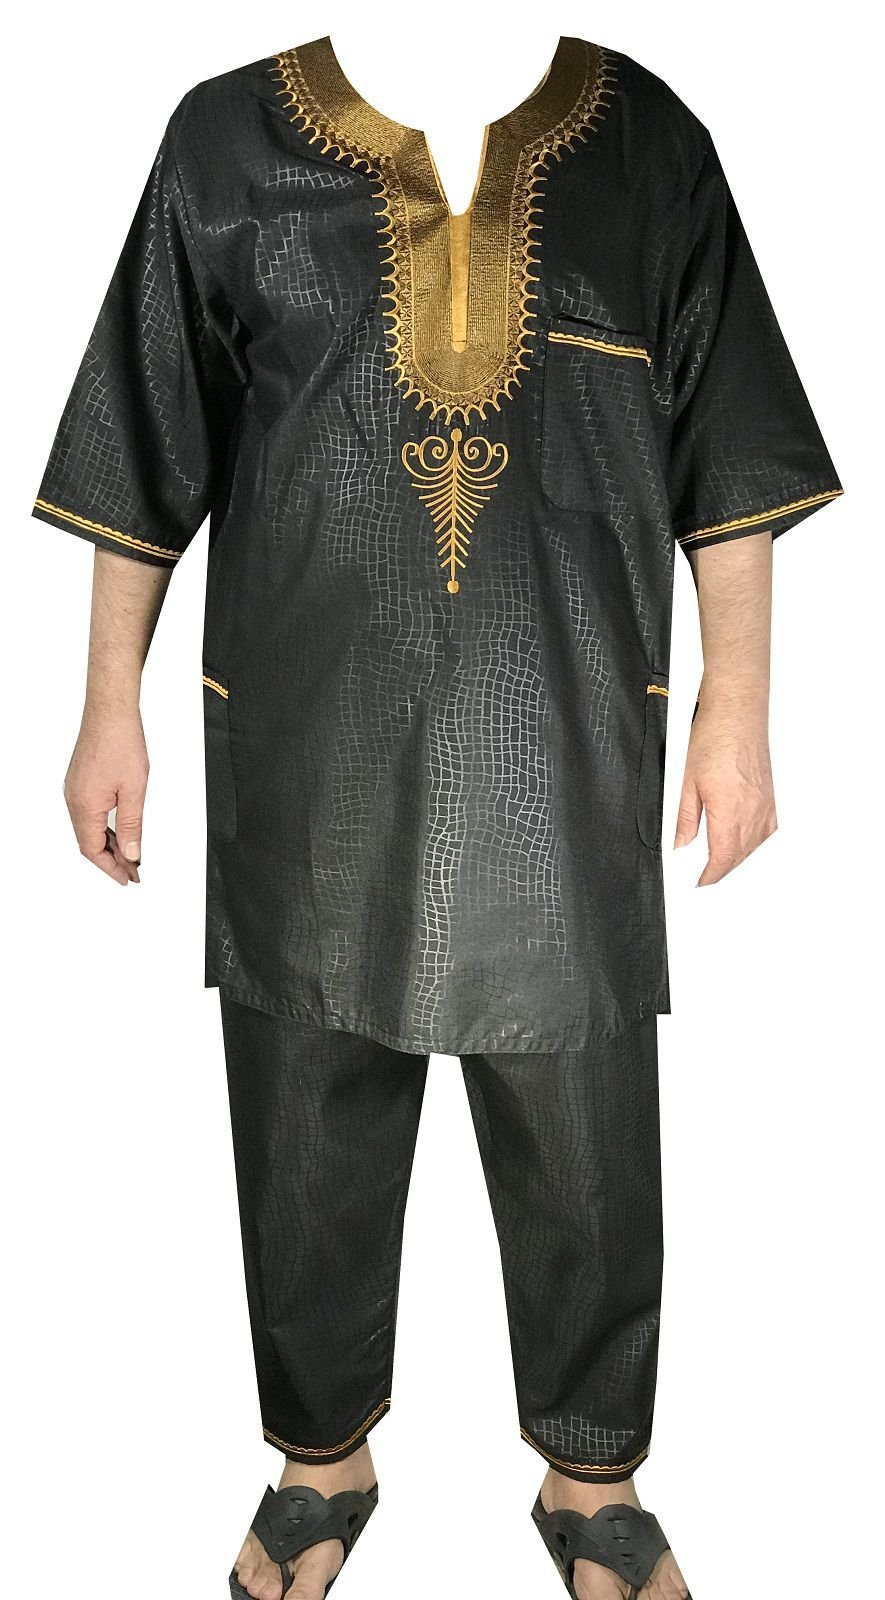 DecoraApparel African Traditional Men Suit Ethnic Clothing Brocade Pant Set (One Size, Black Gold)